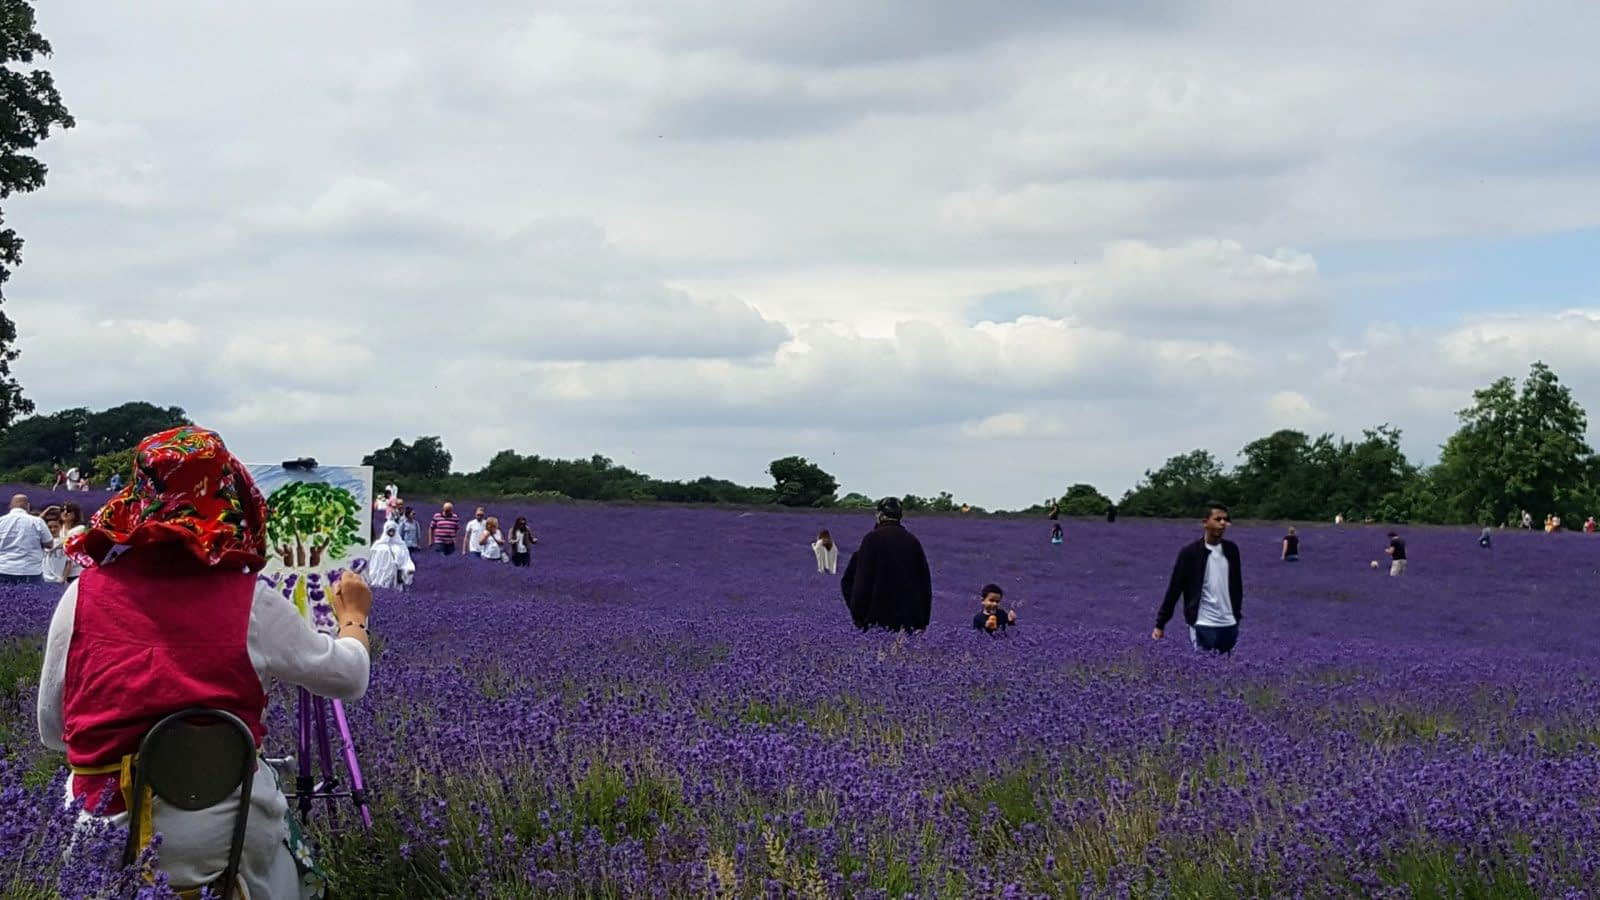 Painting at Mayfield Lavender Farm